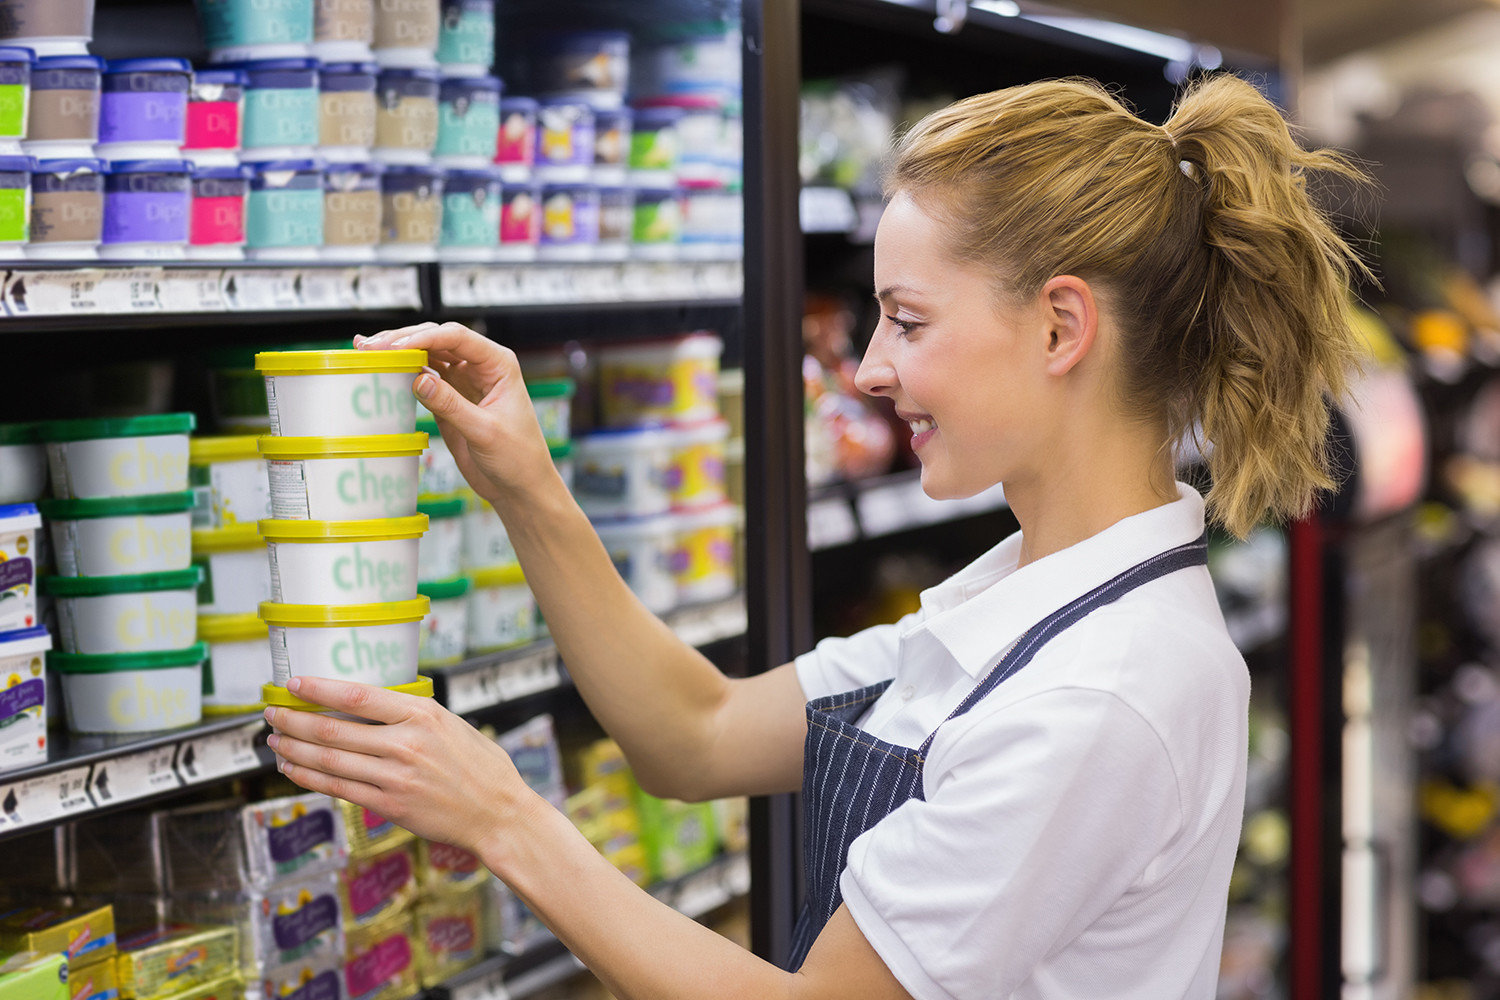 Retail Applications - Shelf Product Replenishment|Australia CipherLab world leader in AIDC solutions